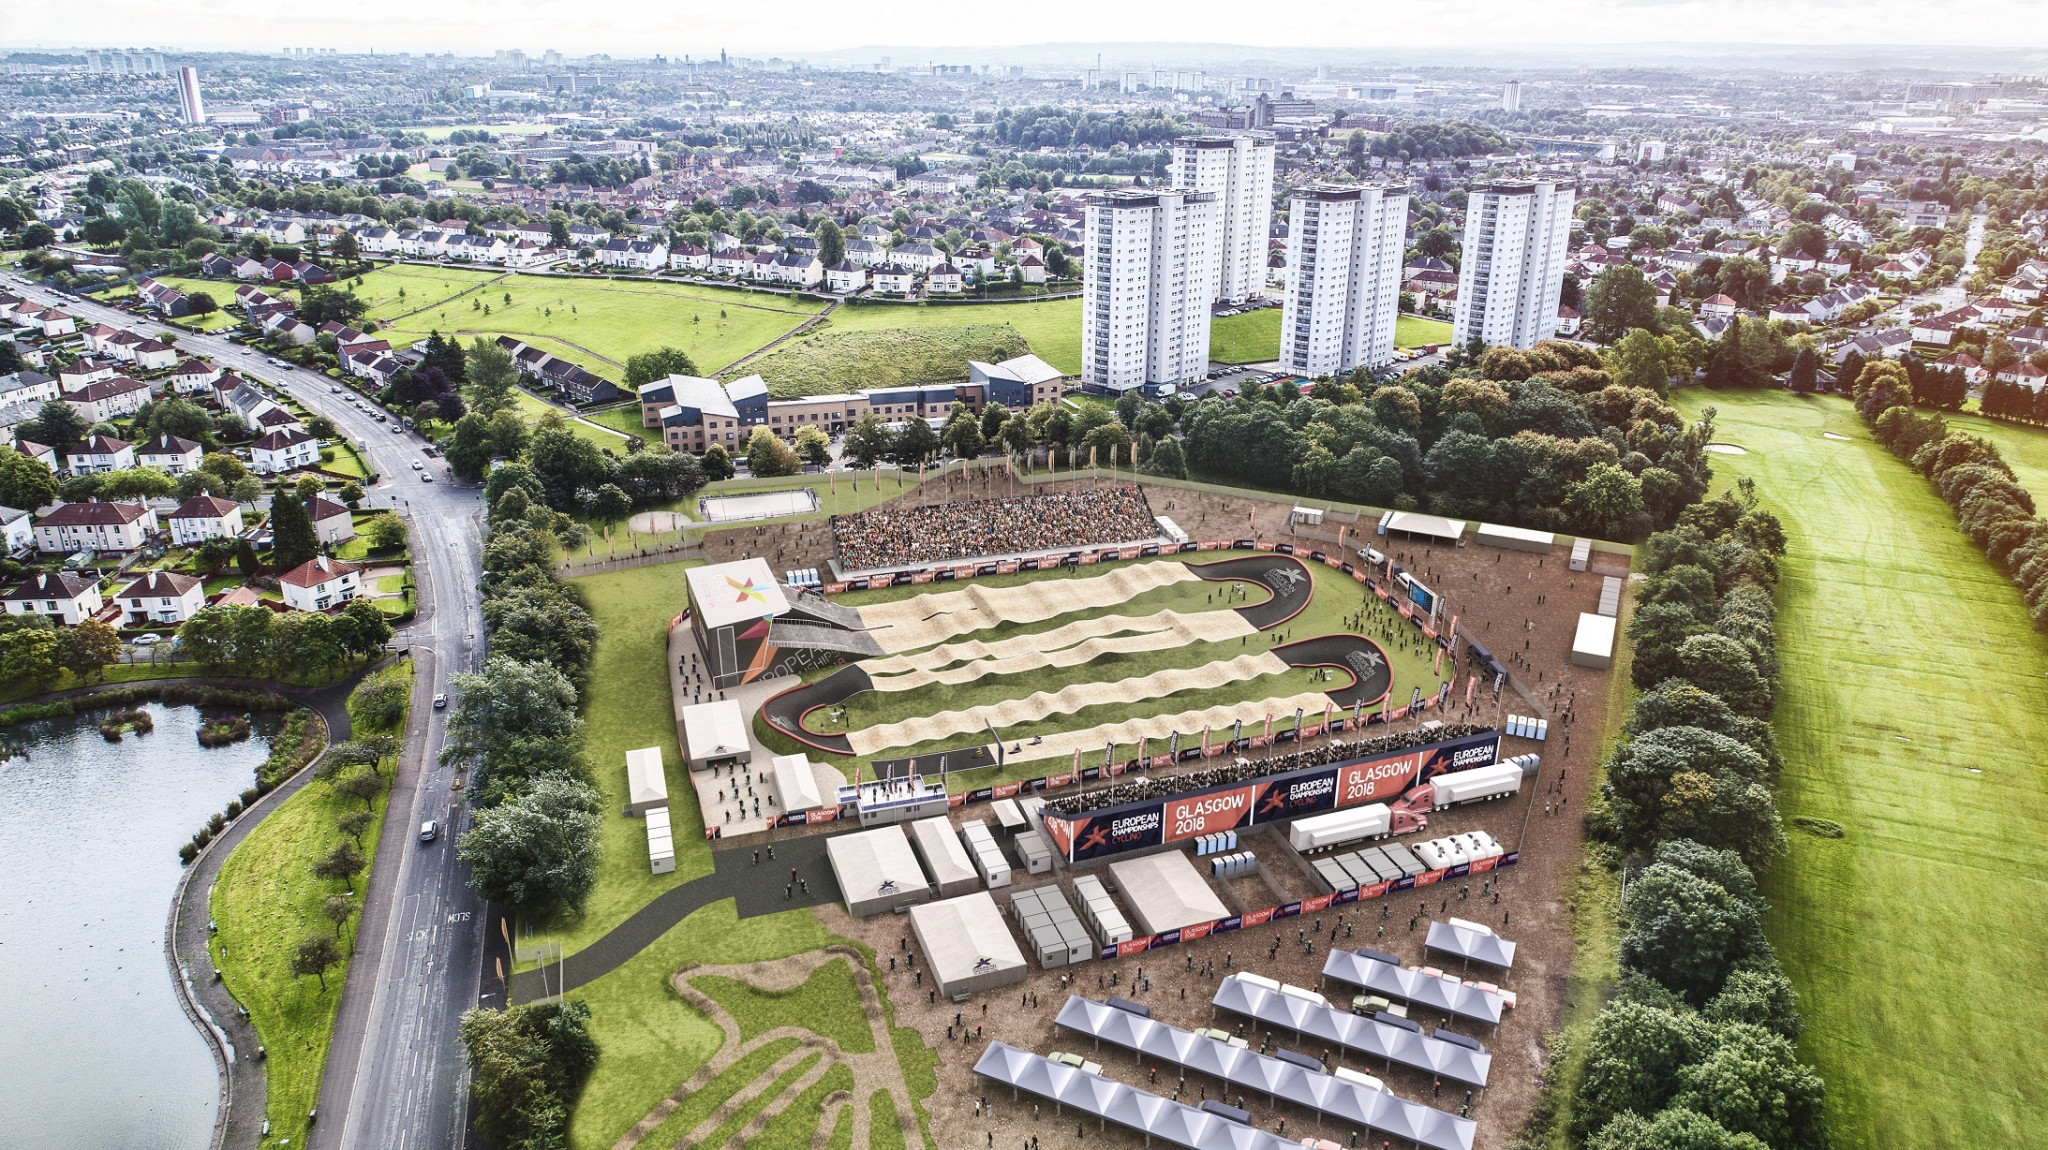 Construction starts on BMX Centre as preparations continue for Glasgow 2018 European Championships